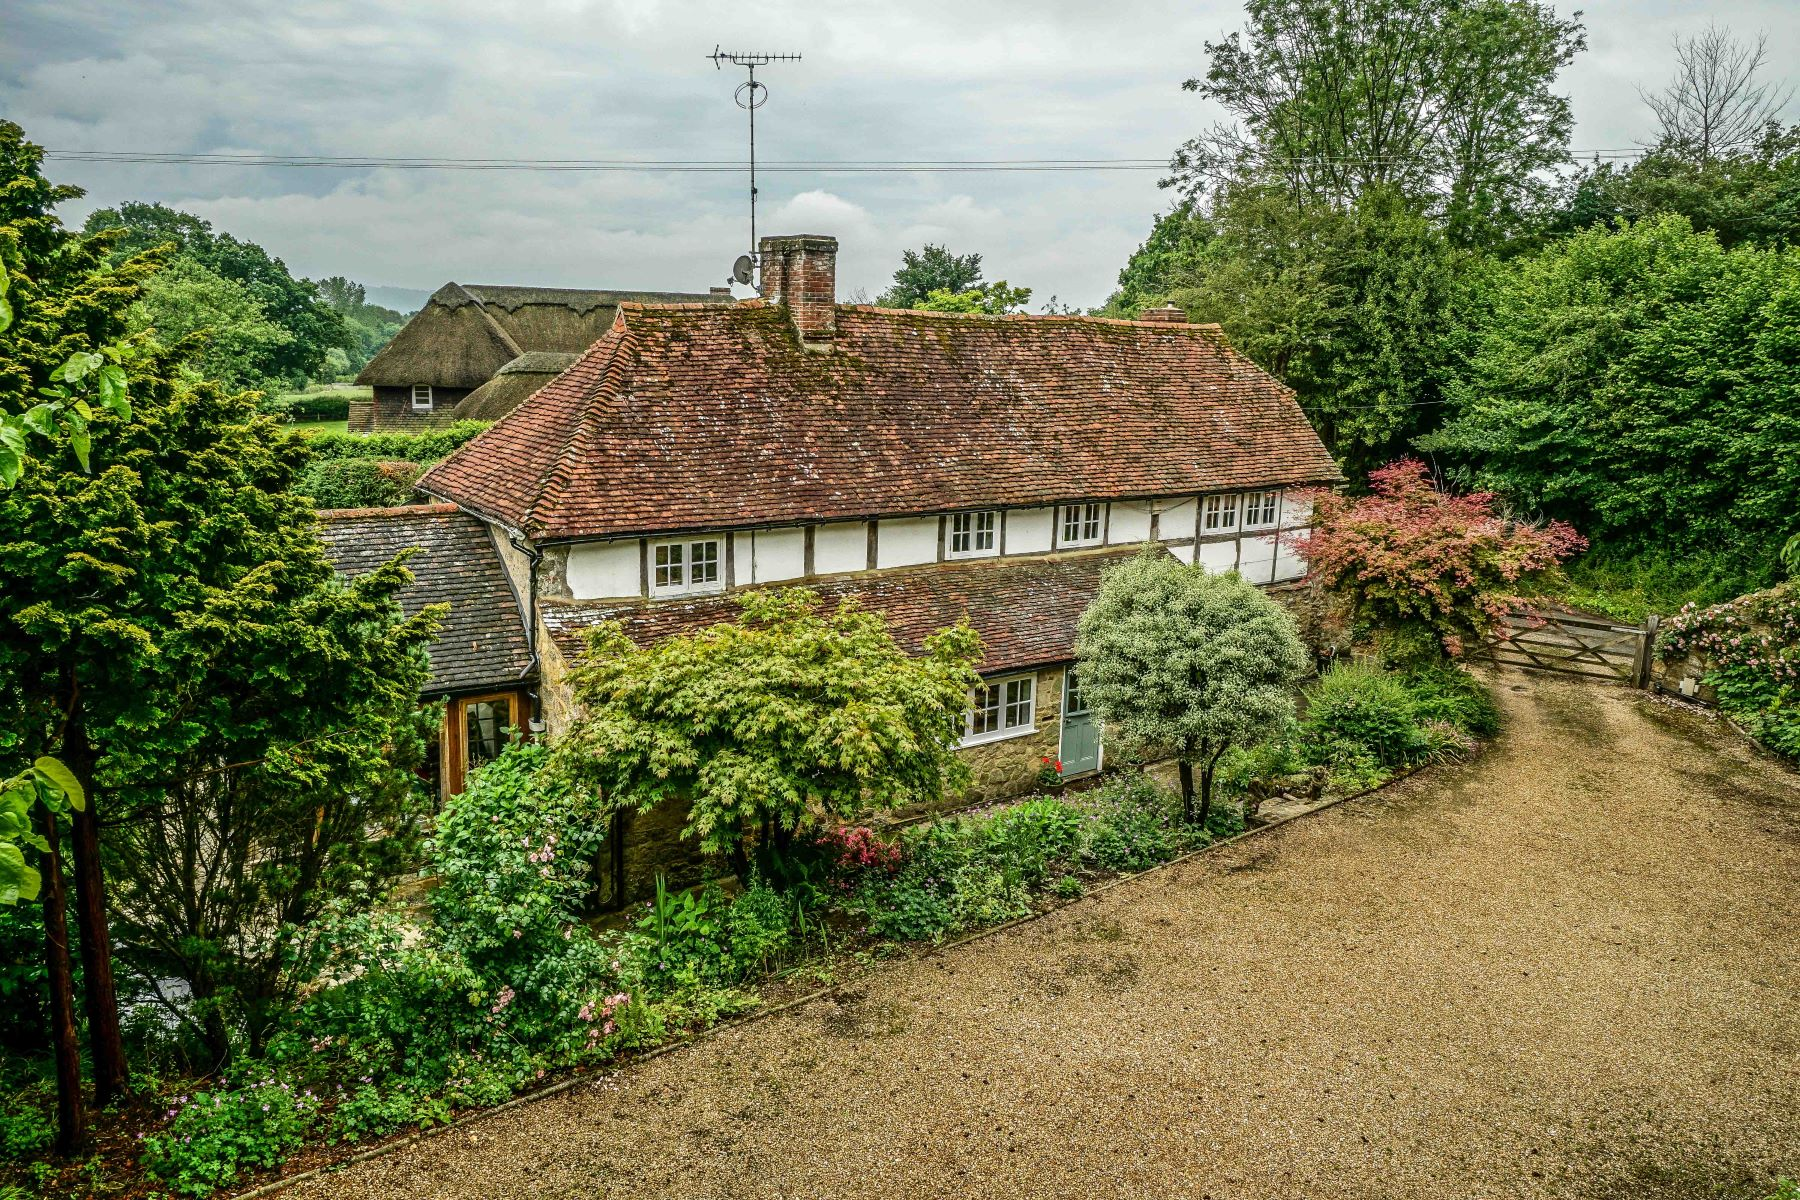 Single Family Homes for Sale at Lower Jordans, Gay Street Pulborough, England RH20 2HH United Kingdom